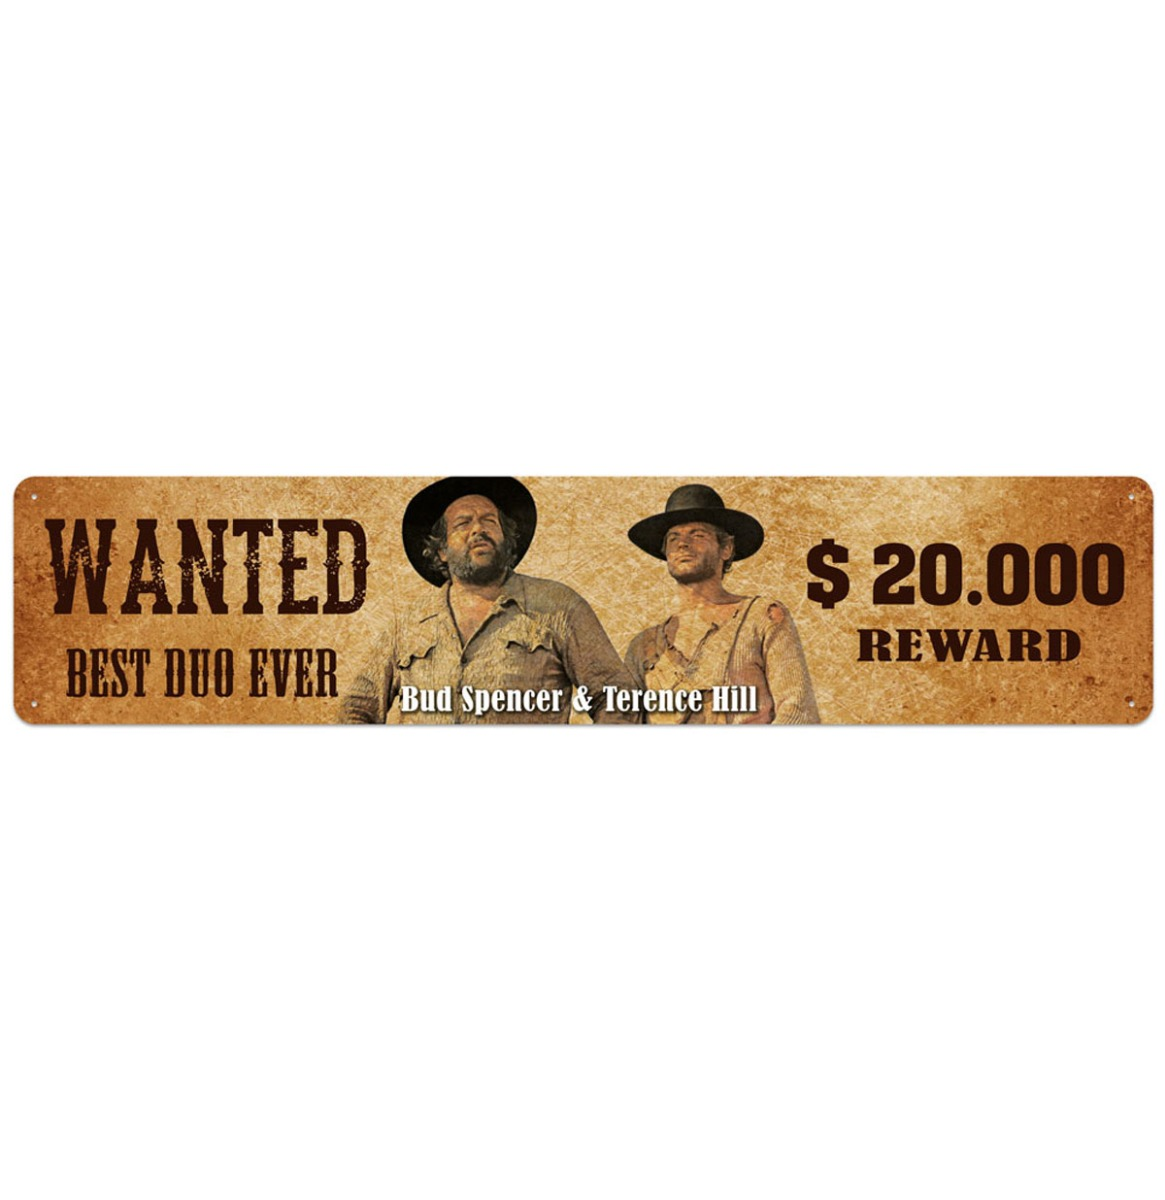 Bud Spencer Terence Hill Best Duo Ever Reward 20.000 Straatbord 46 x 10 cm